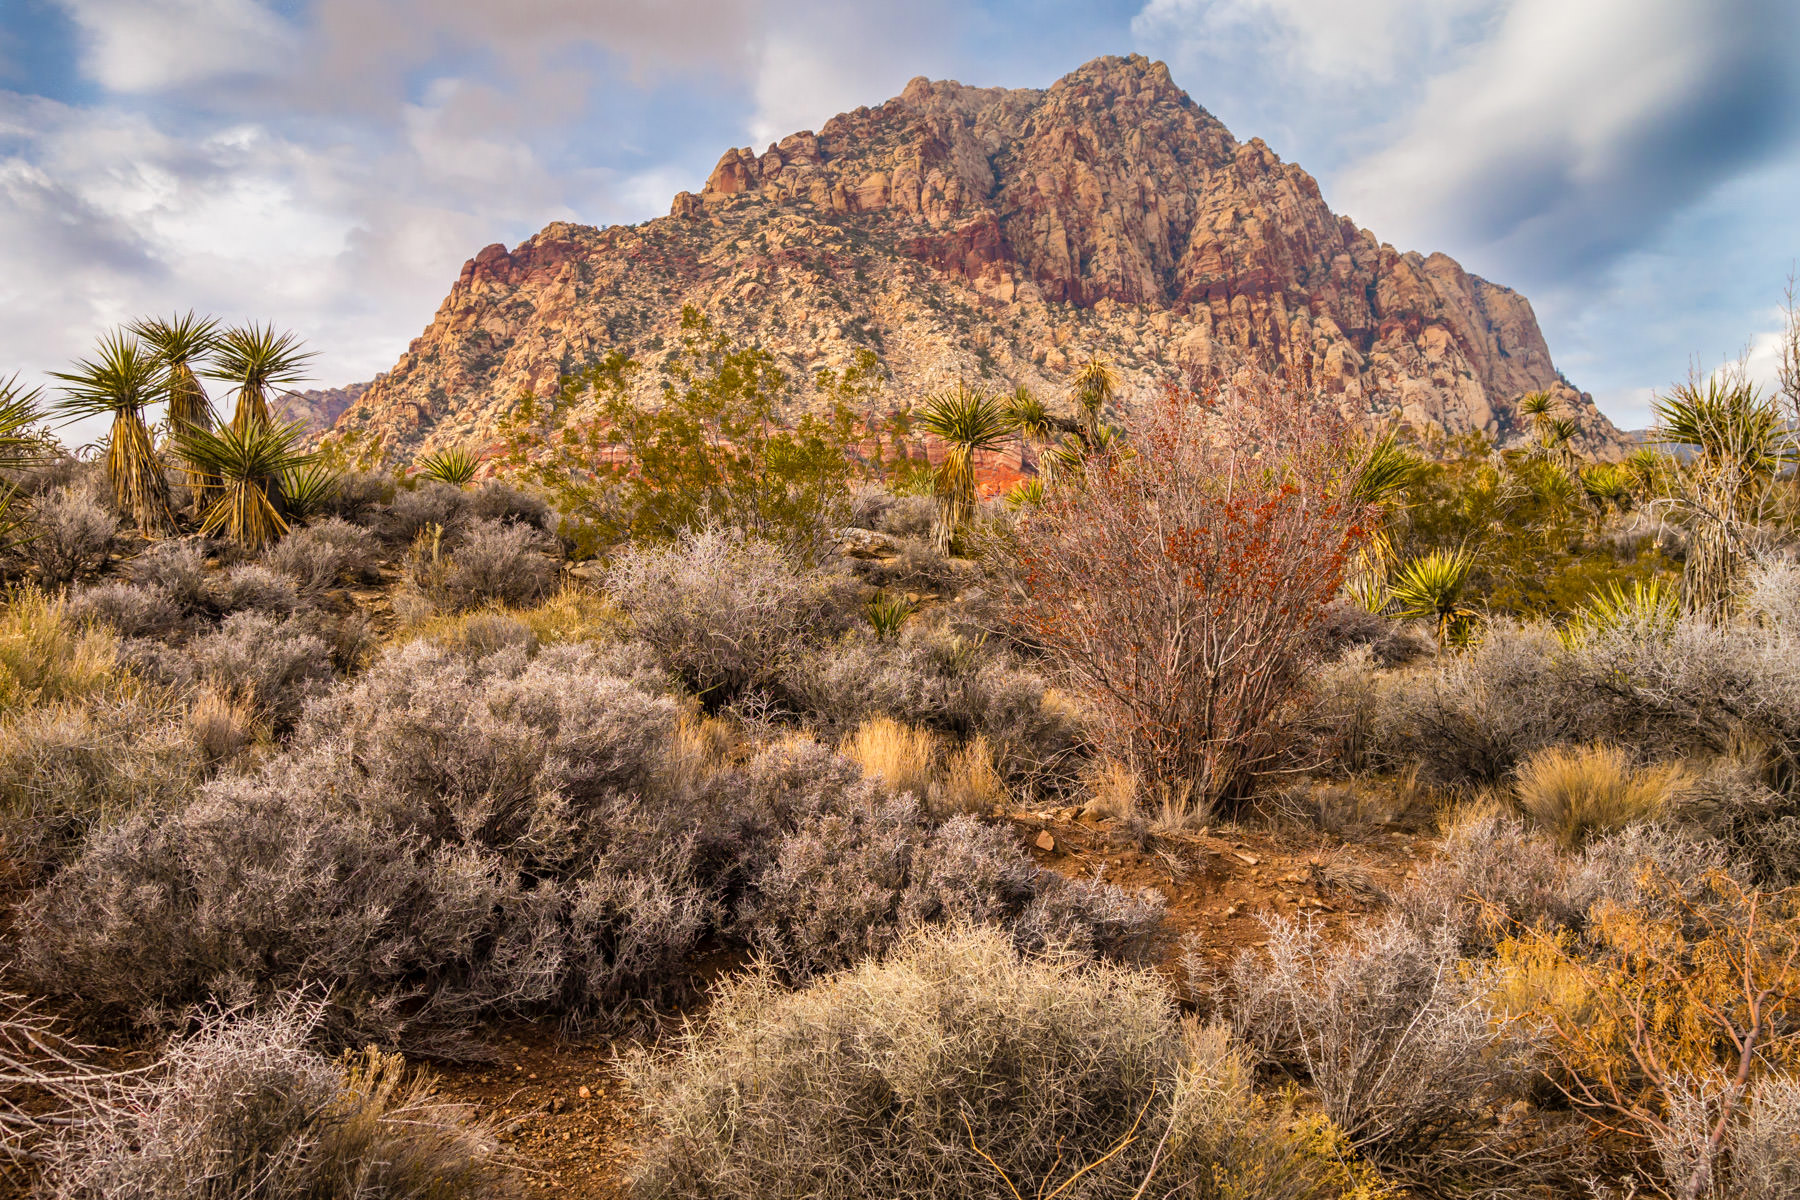 Desert brush surrounds a rocky, mountainous outcropping at Spring Mountain Ranch State Park, Nevada.